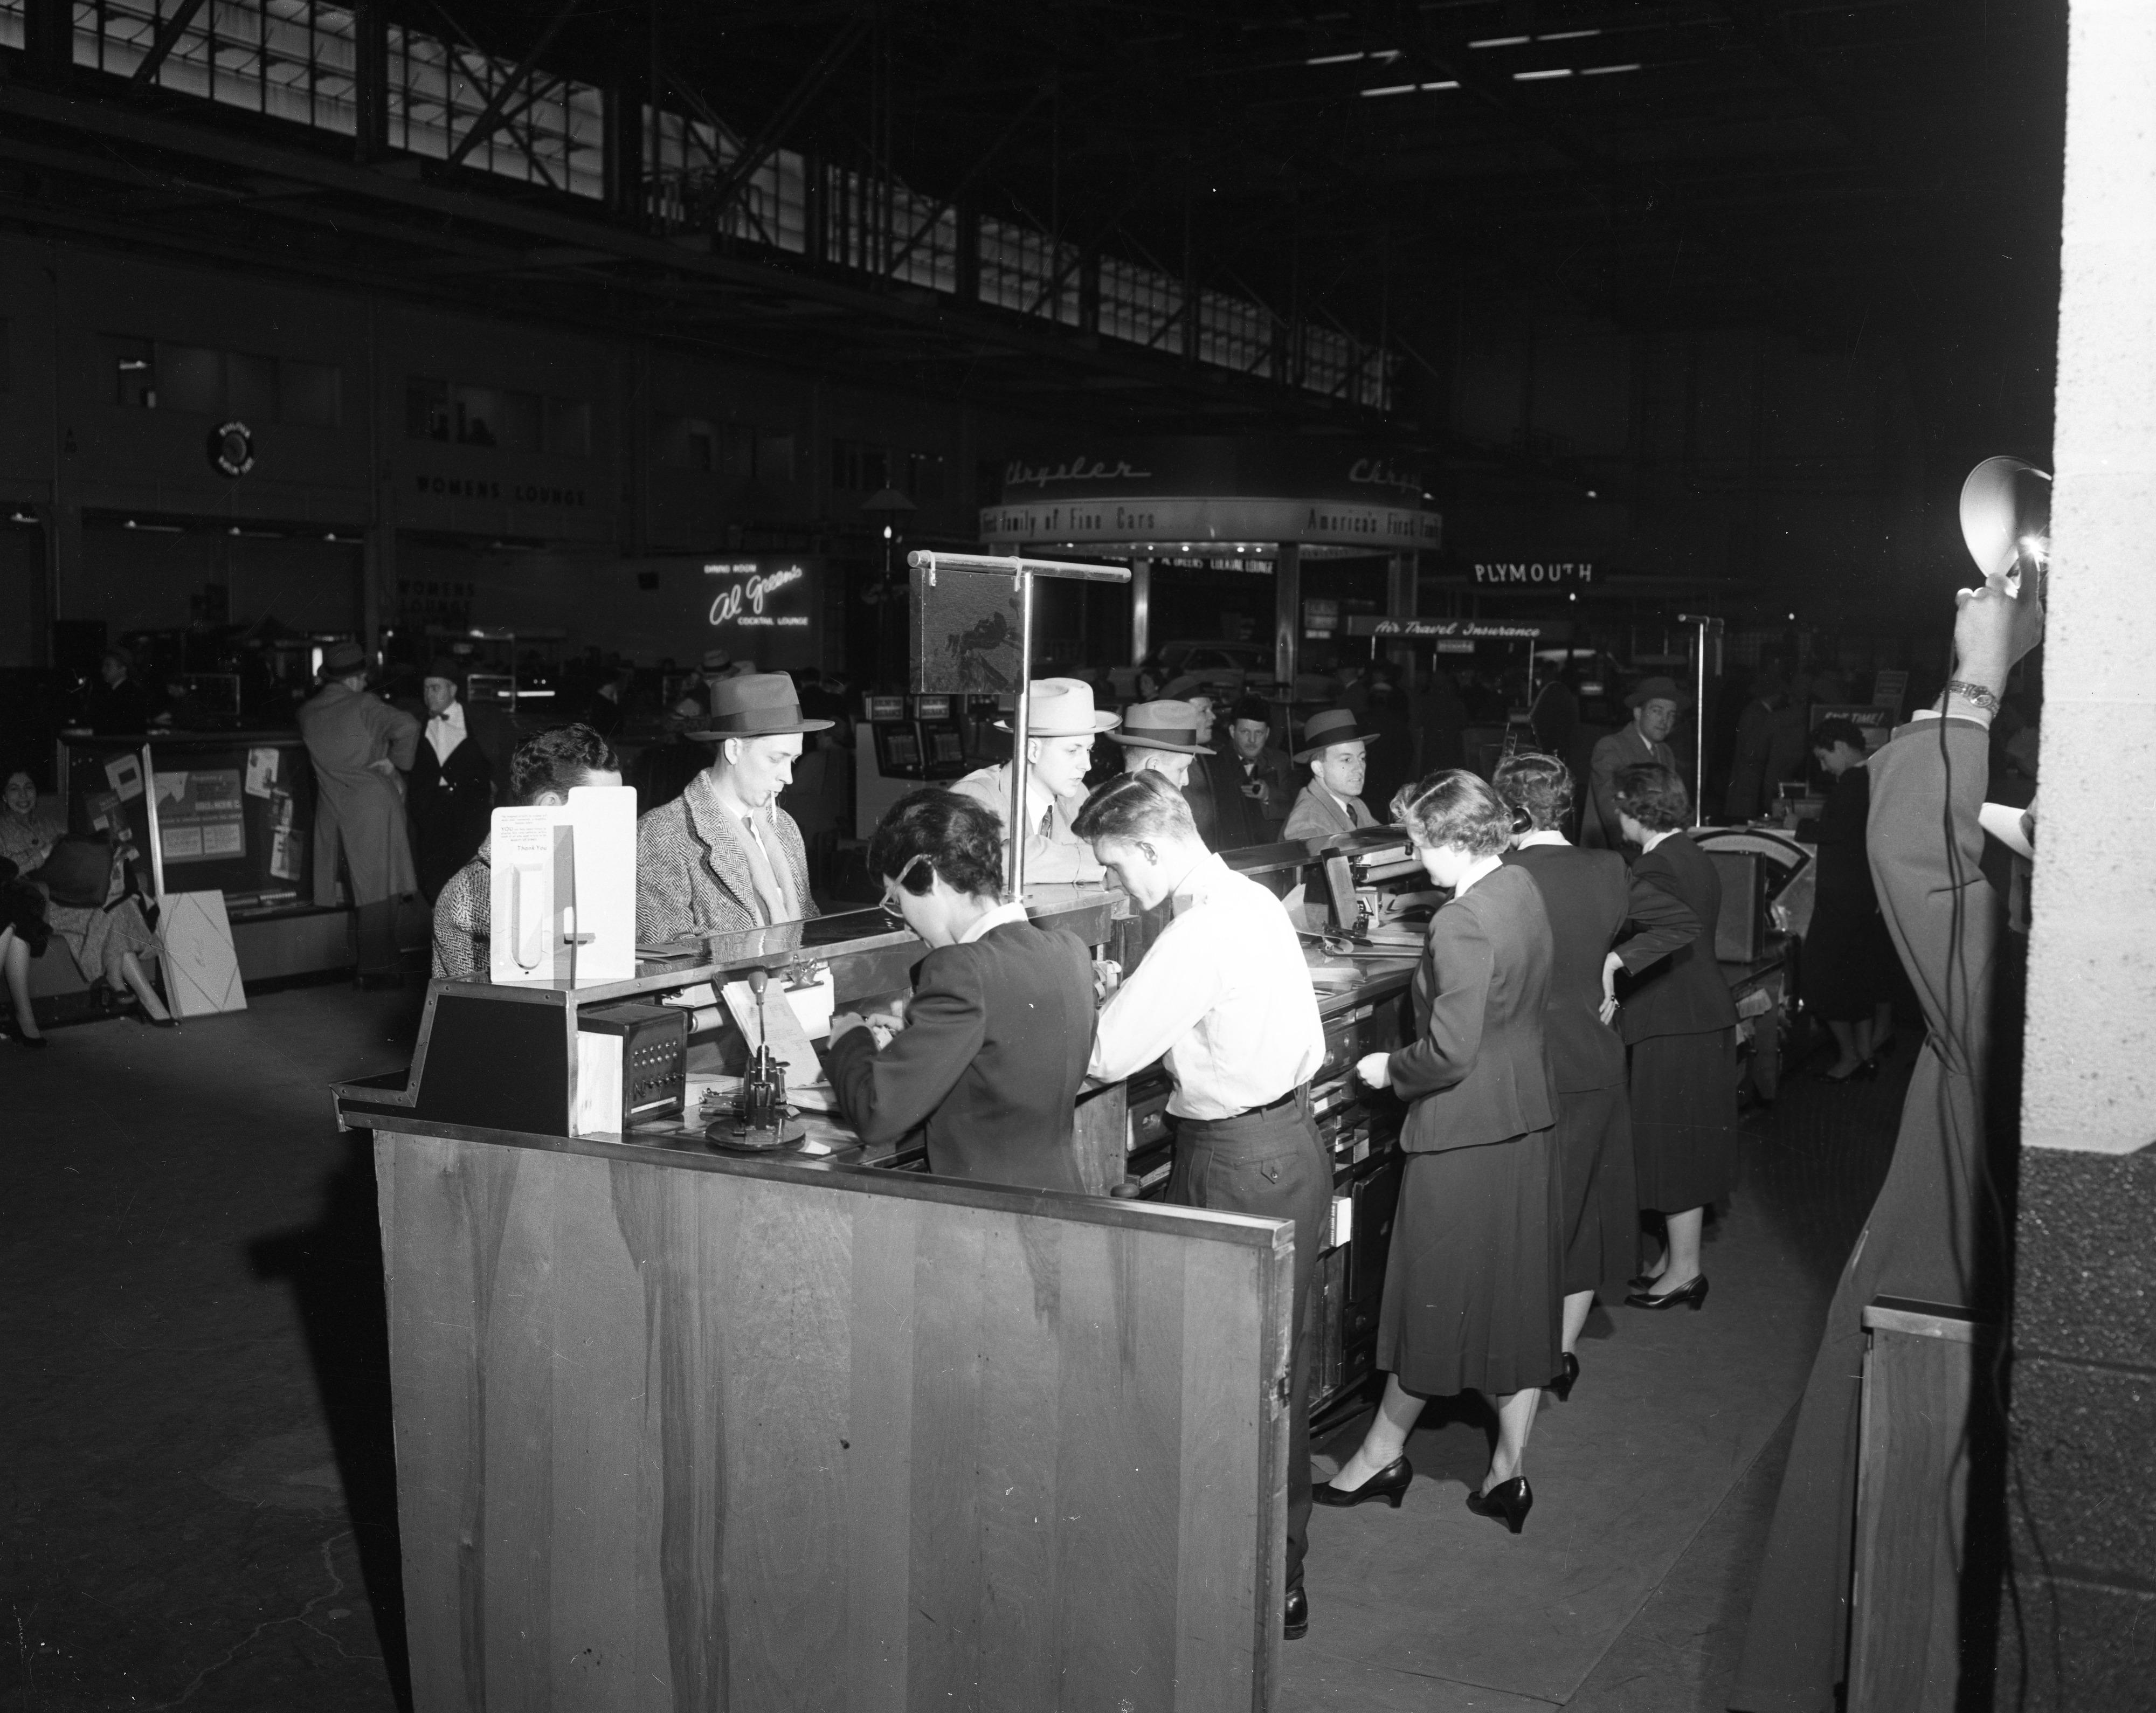 American Airlines Ticket Sales Counter at Willow Run Airport, February 1954 image